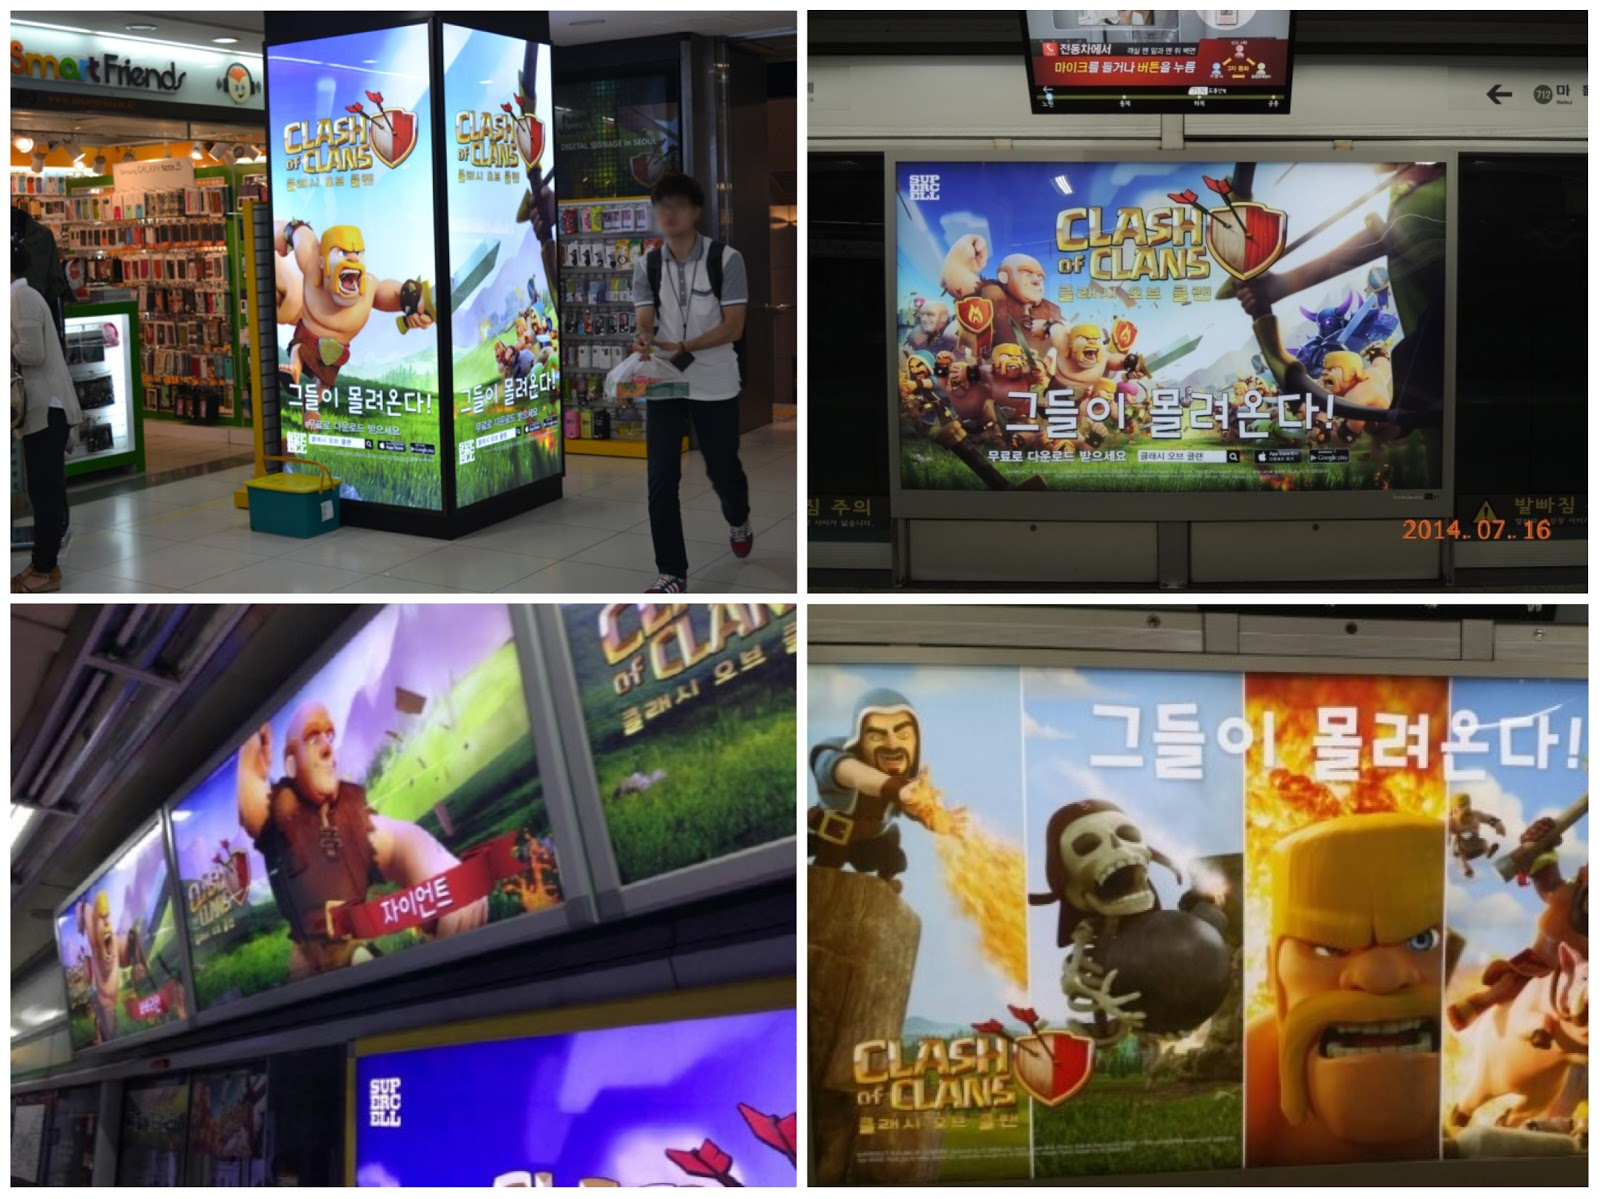 Clash of Clans Outdoor Commercials Image